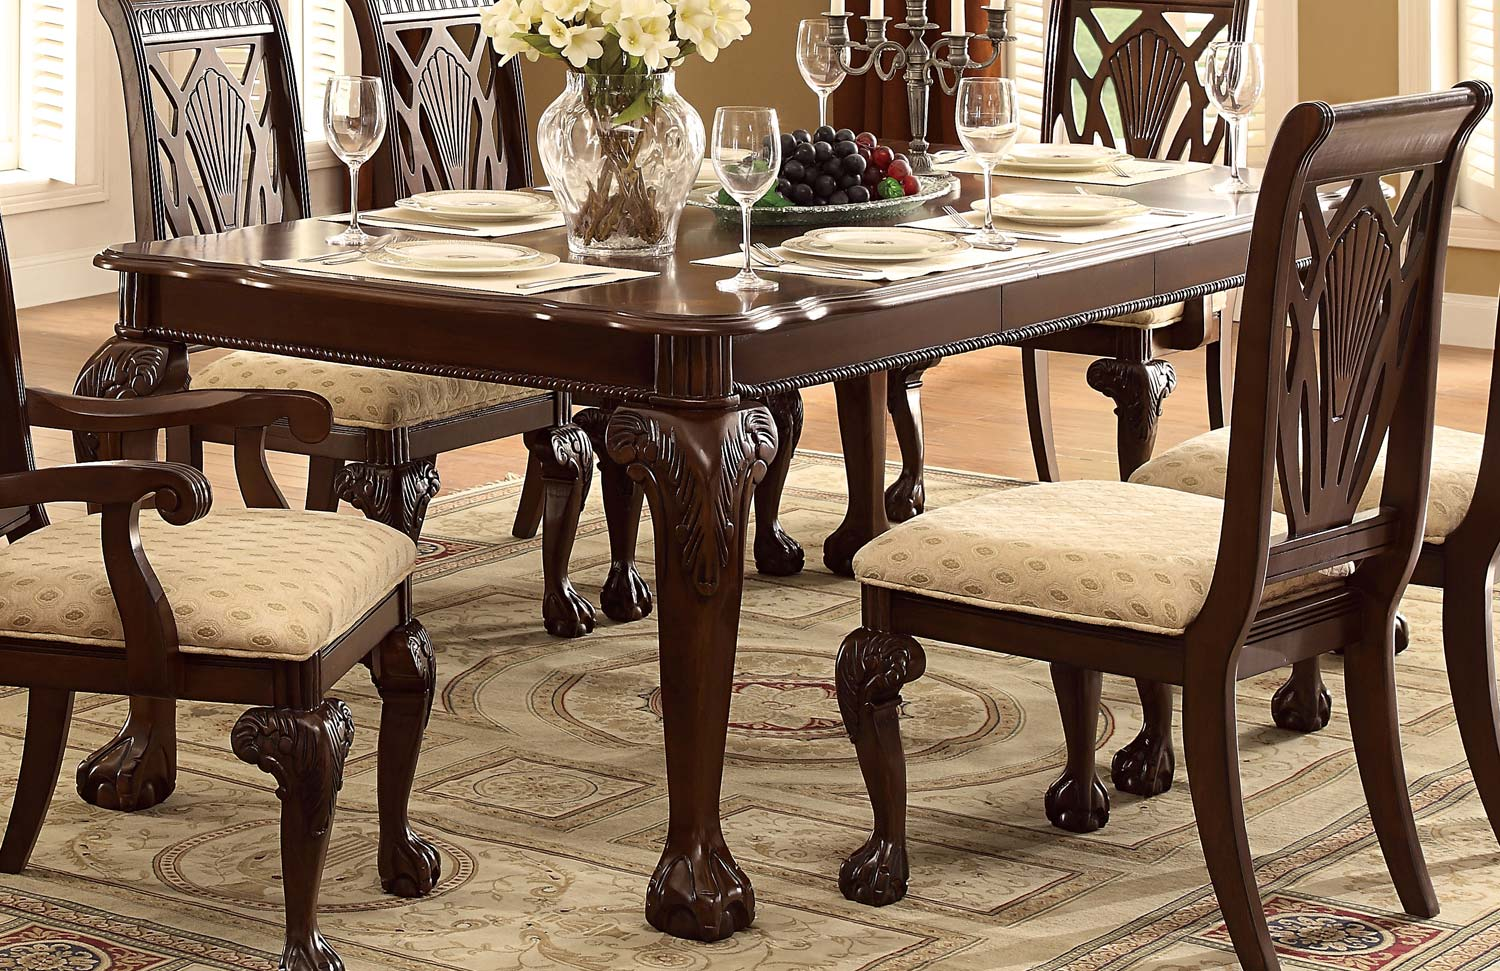 Homelegance Norwich Leg Dining Table Set - Beige Fabric - Warm Cherry 5055-82-Din-Set at ...